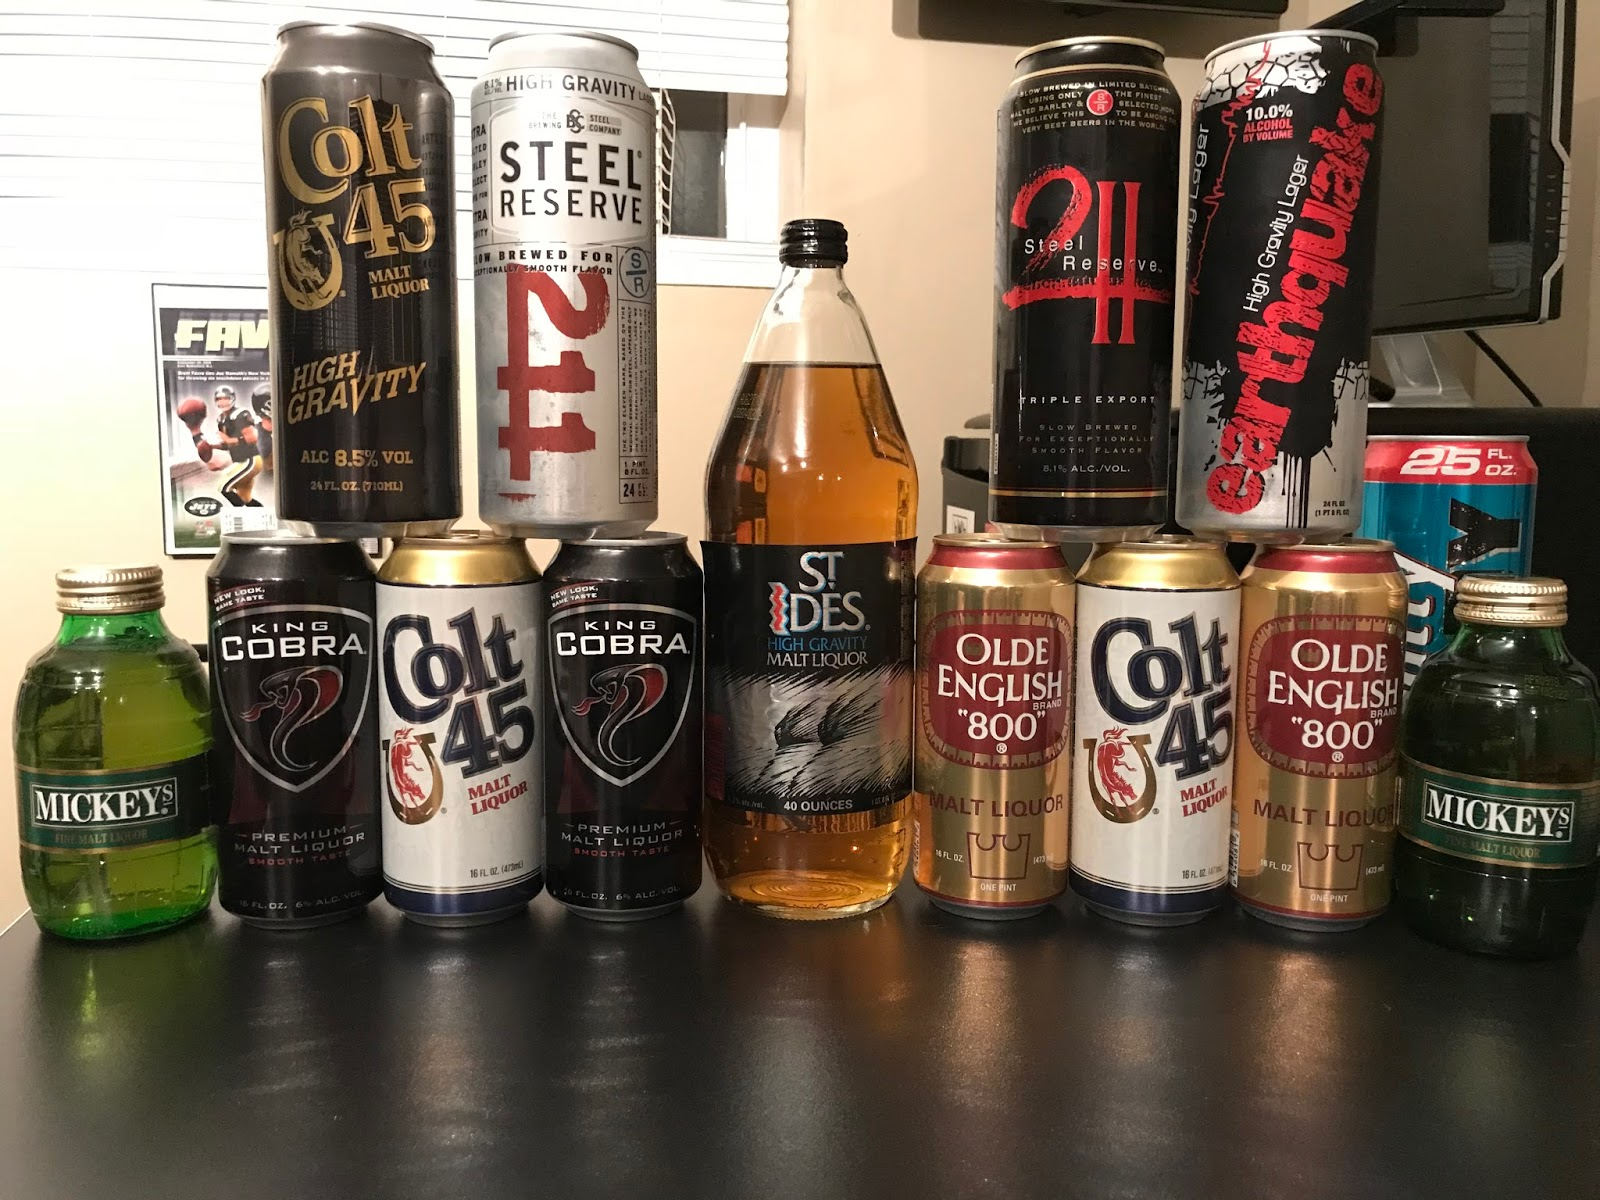 Restricting Malt Liquor Sales is Linked to Reductions in Neighborhood Crime